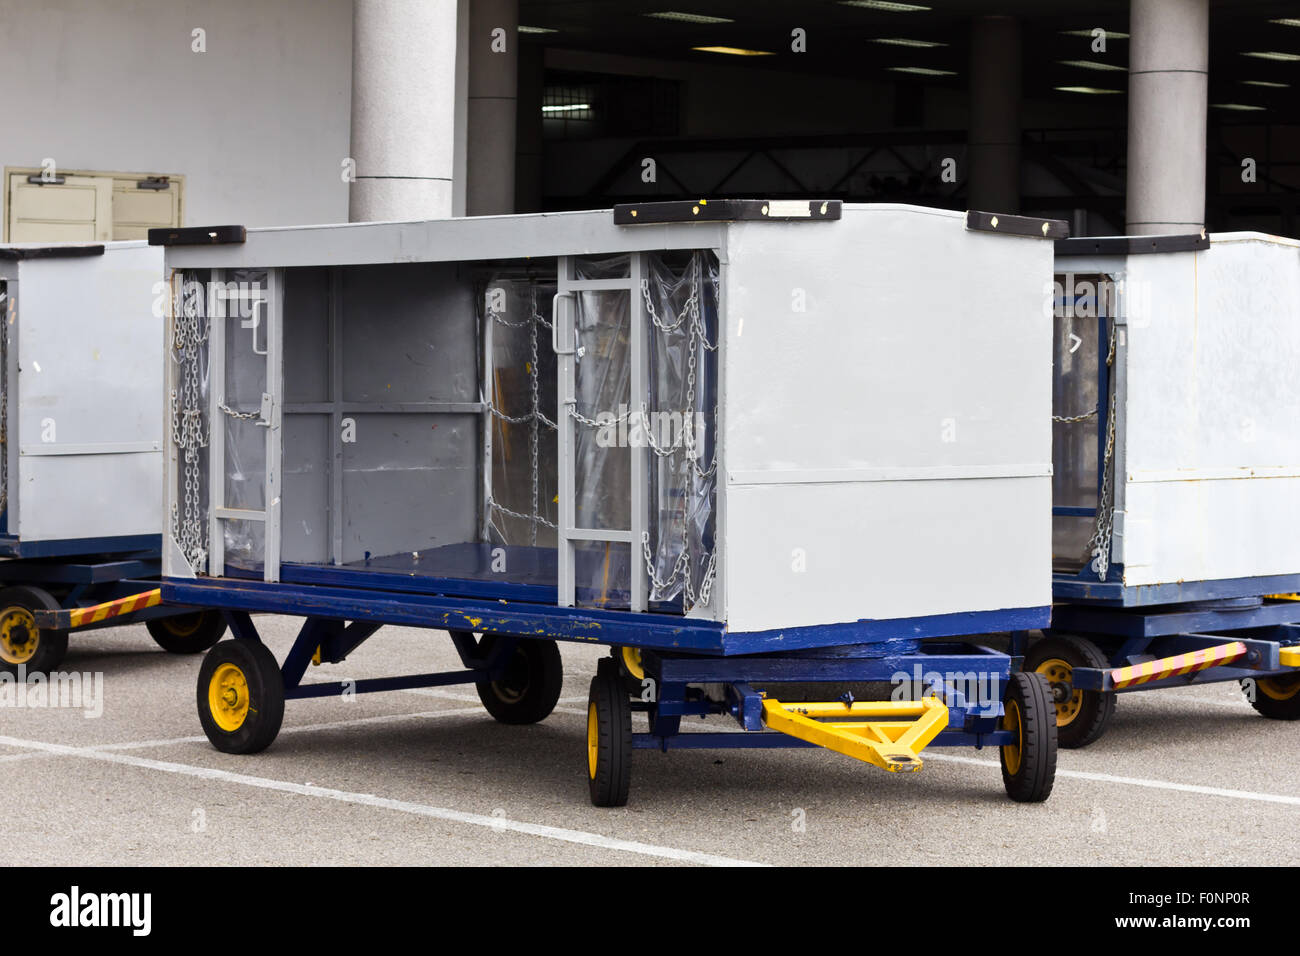 Airport baggage trolley - Stock Image